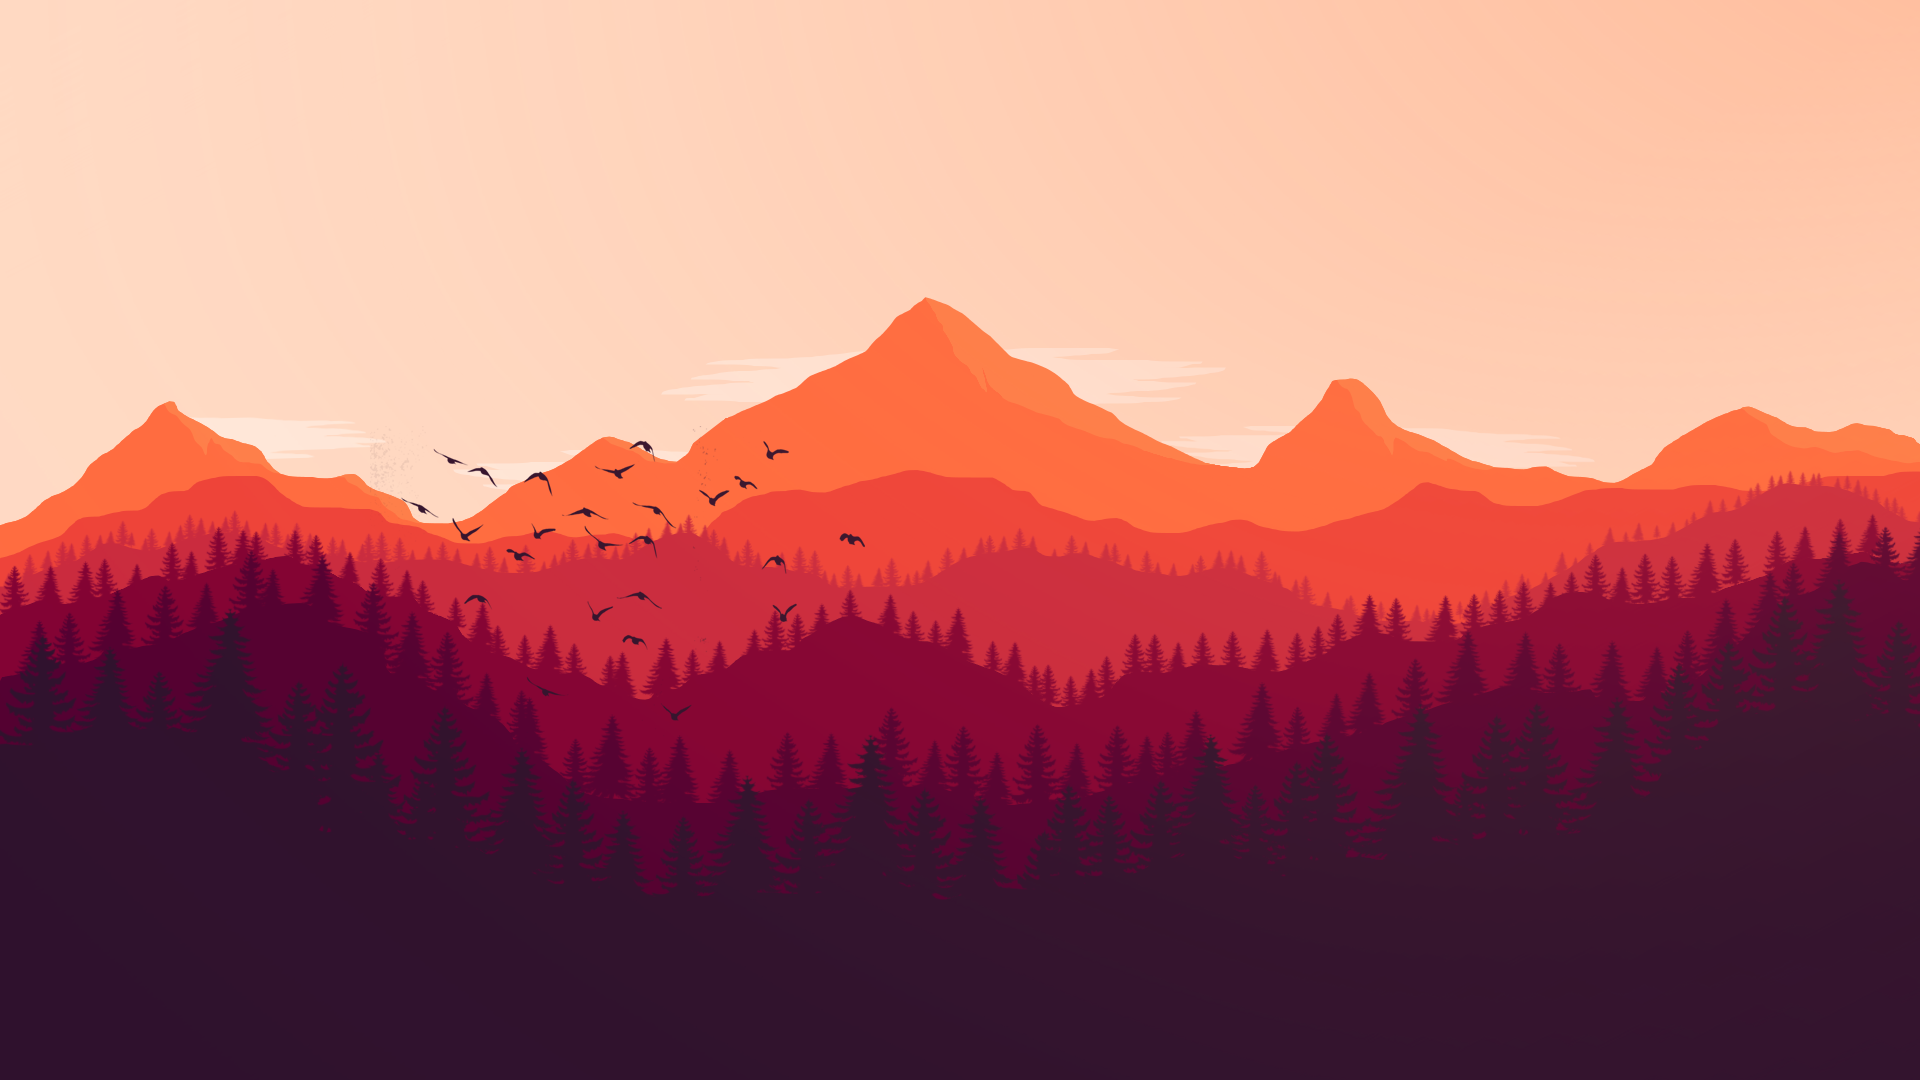 firewatch-pictures-to-download-1920x1080-kB-wallpaper-wpc5804802